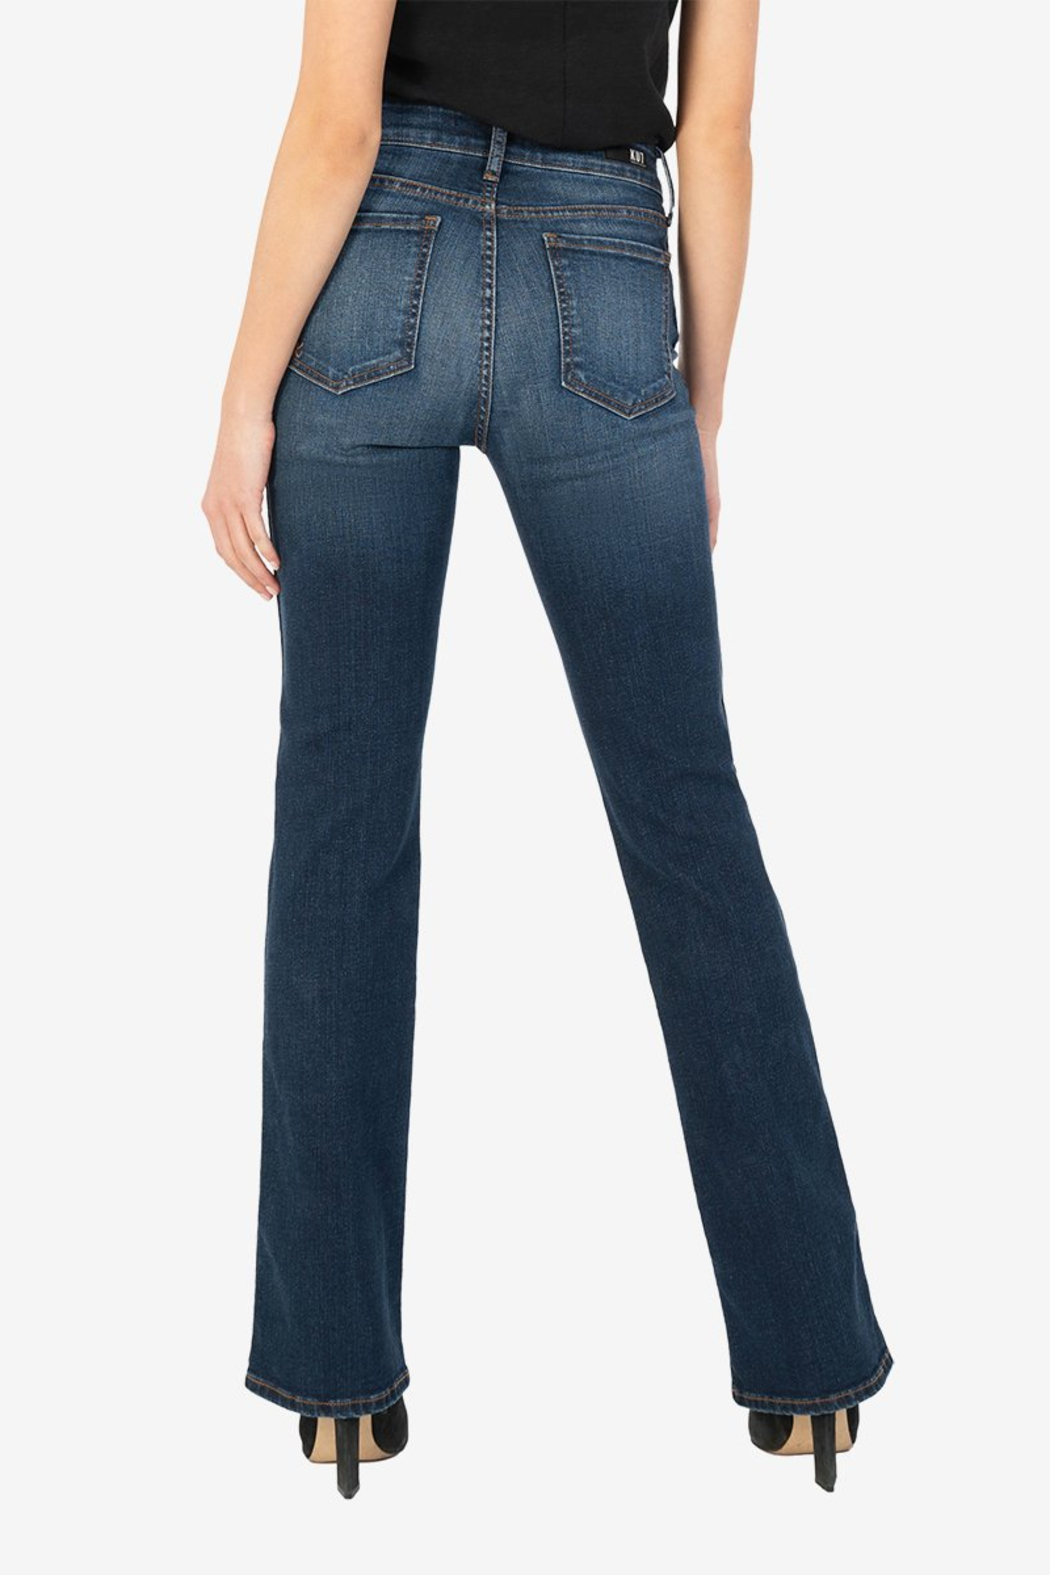 Kut from the Kloth Natalie High Rise Fab Ab - Side Cropped Image